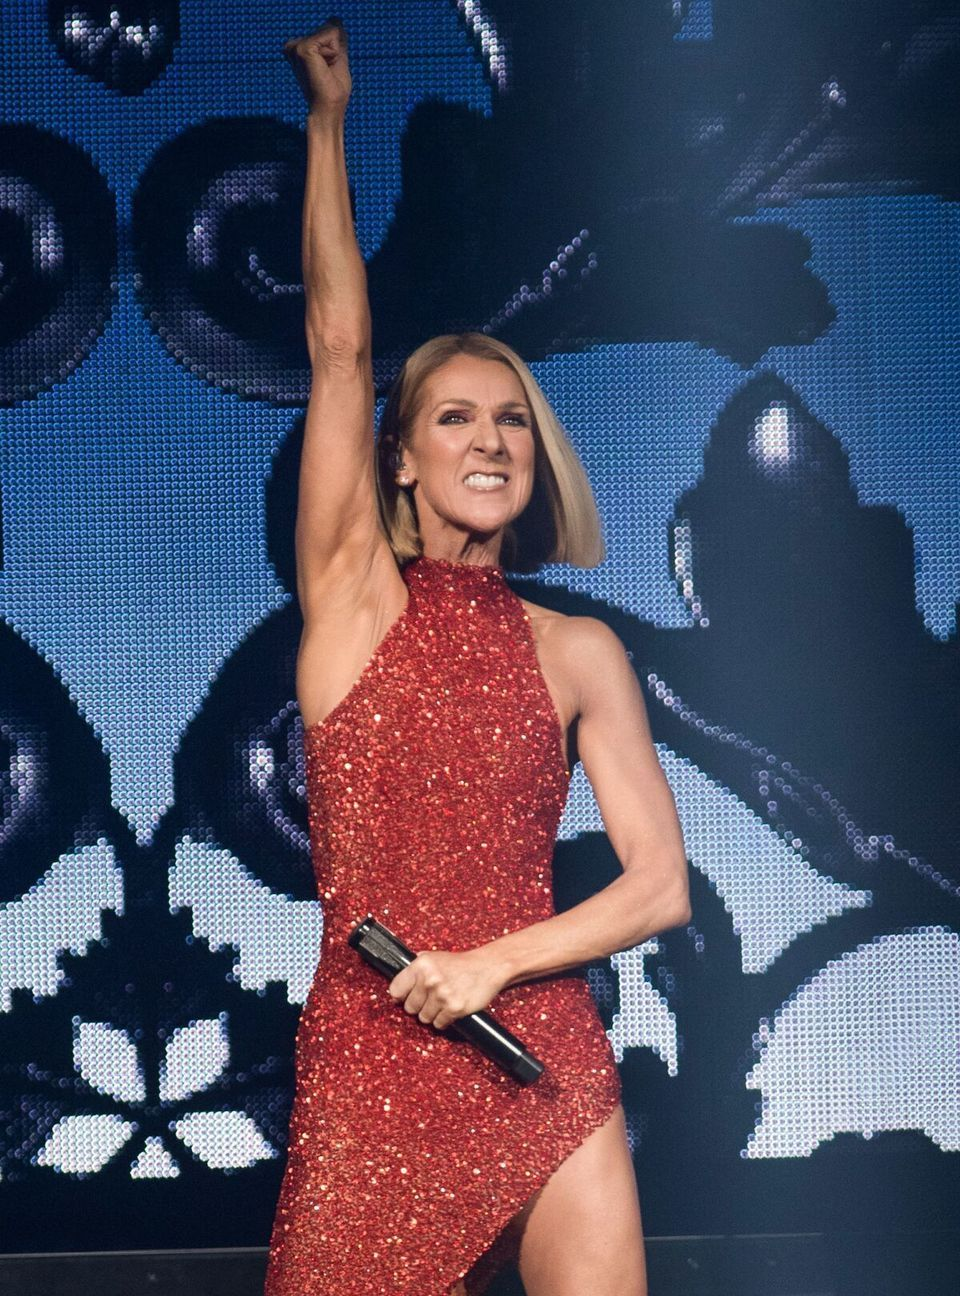 Celine Dion Amorce Son Courage World Tour Mercredi Soir Au Centre Videotron A Quebec Celine Dion Celebrities Female Celine Deon